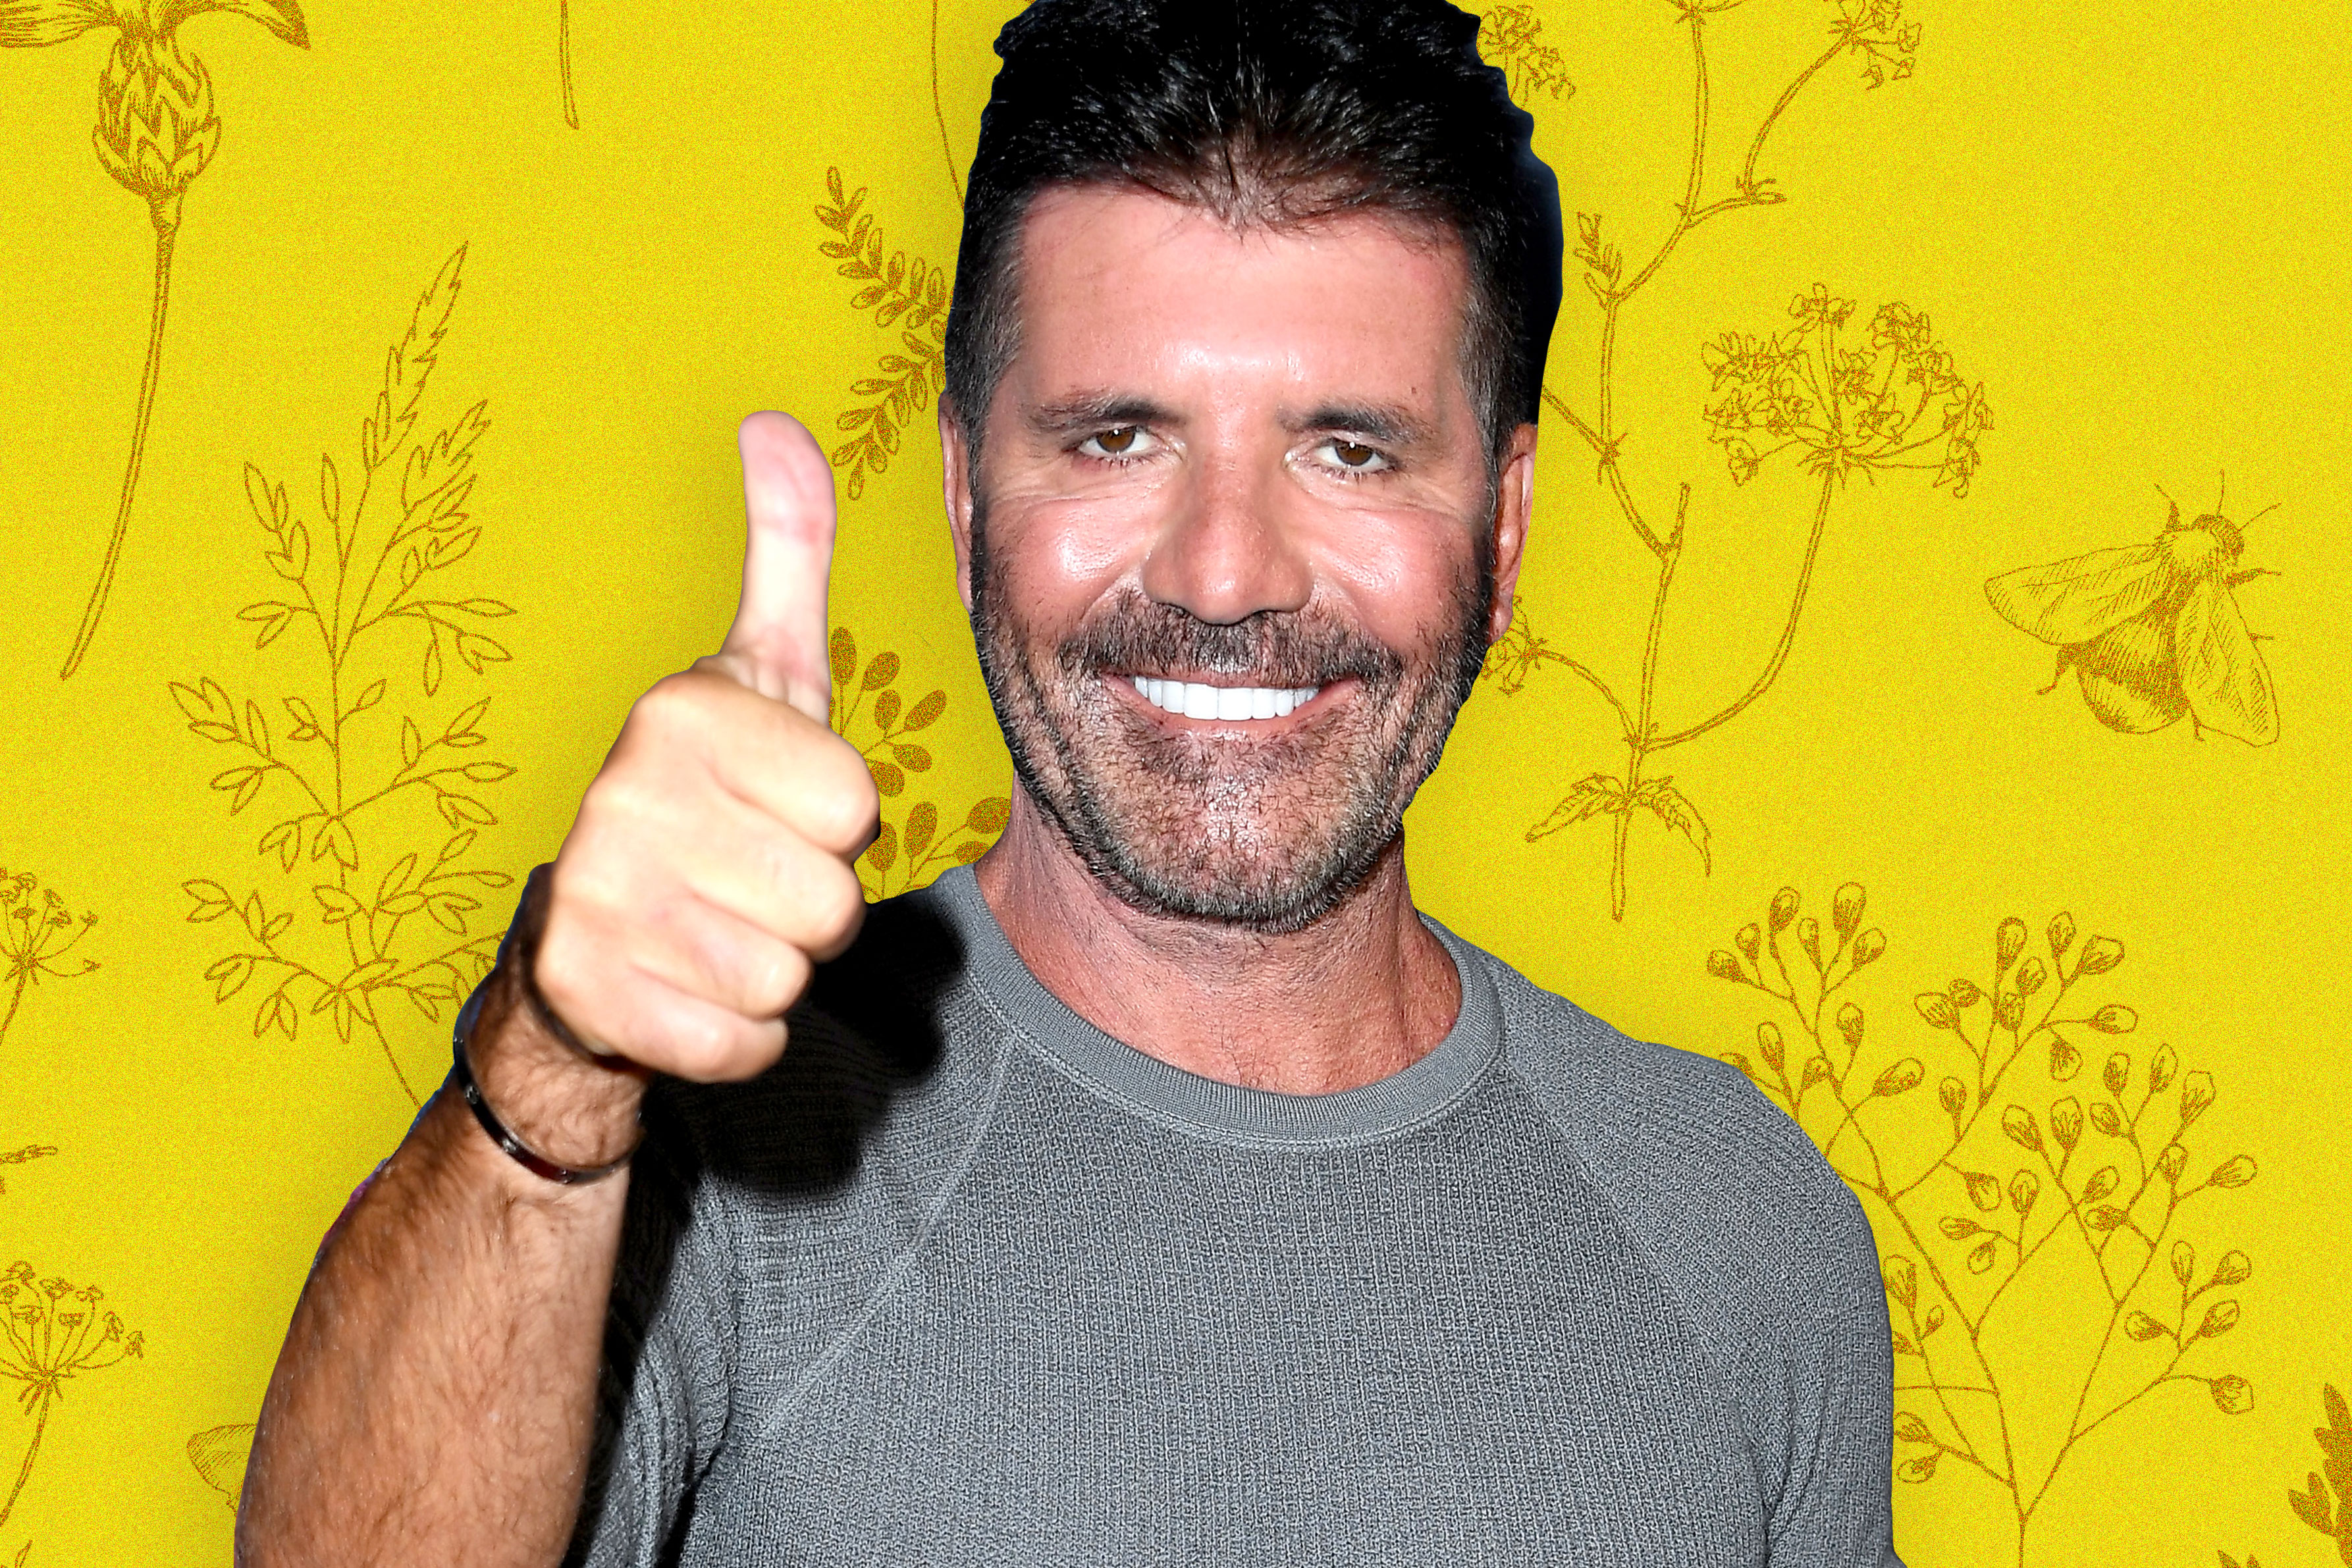 simon-cowell-weightloss.jpg